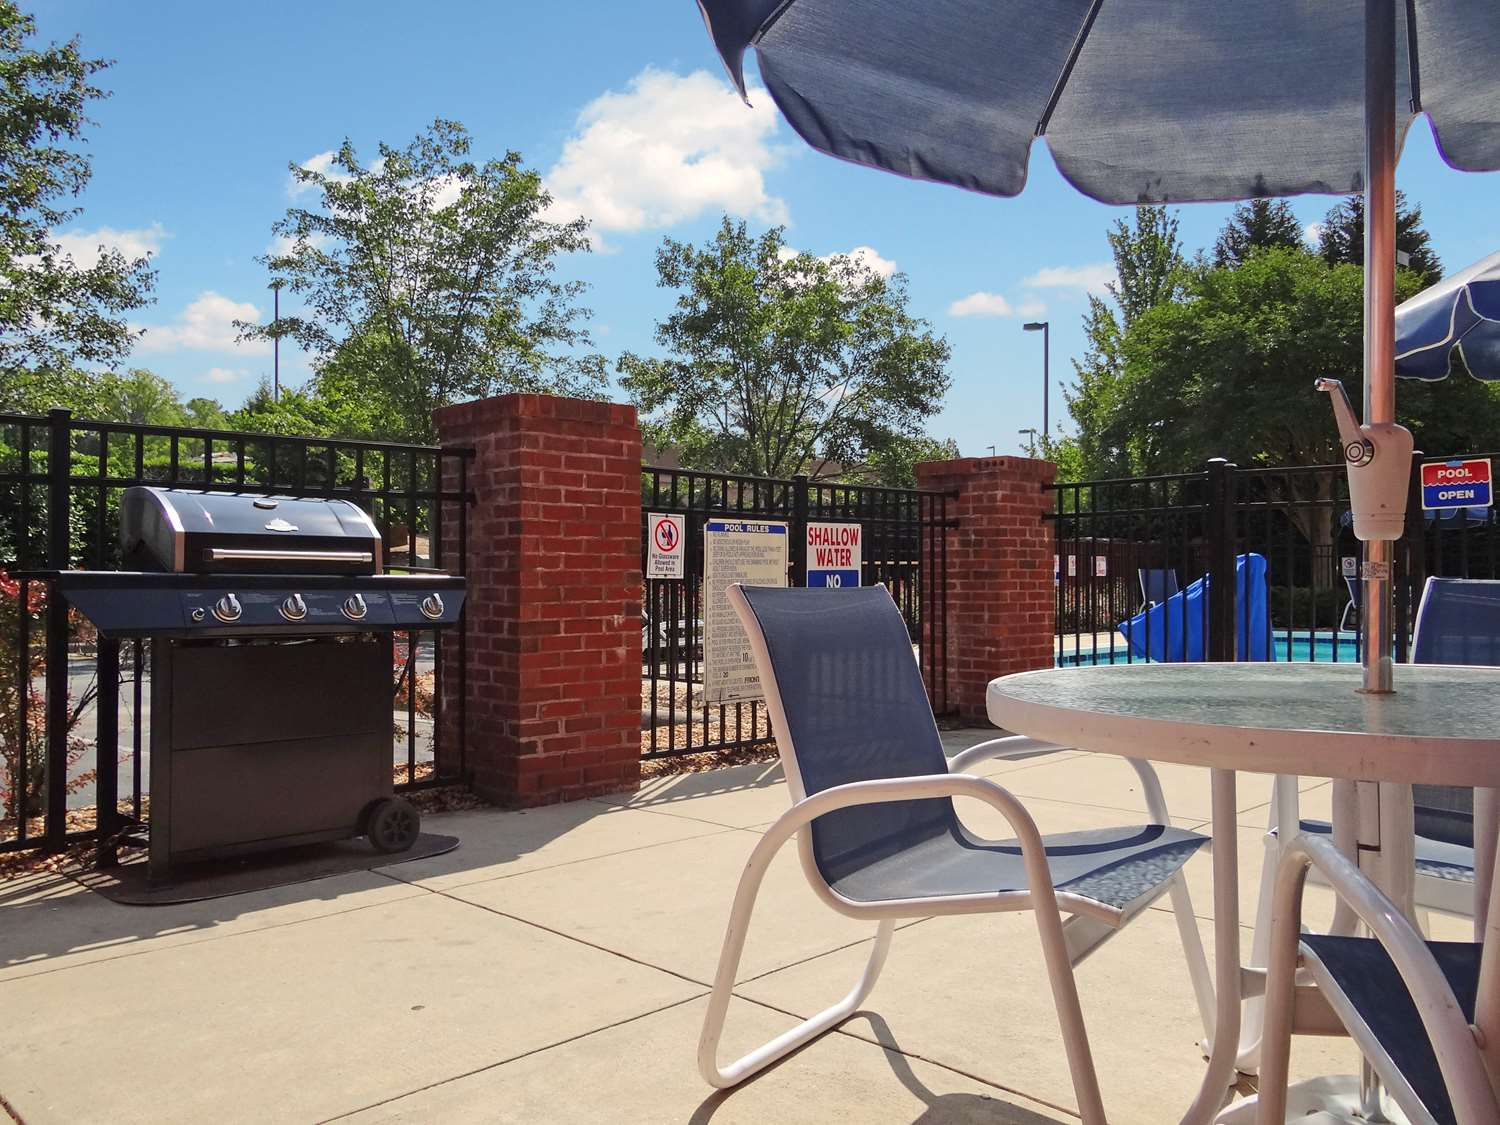 proam - Extended Stay America Hotel Regency Parkway South Cary